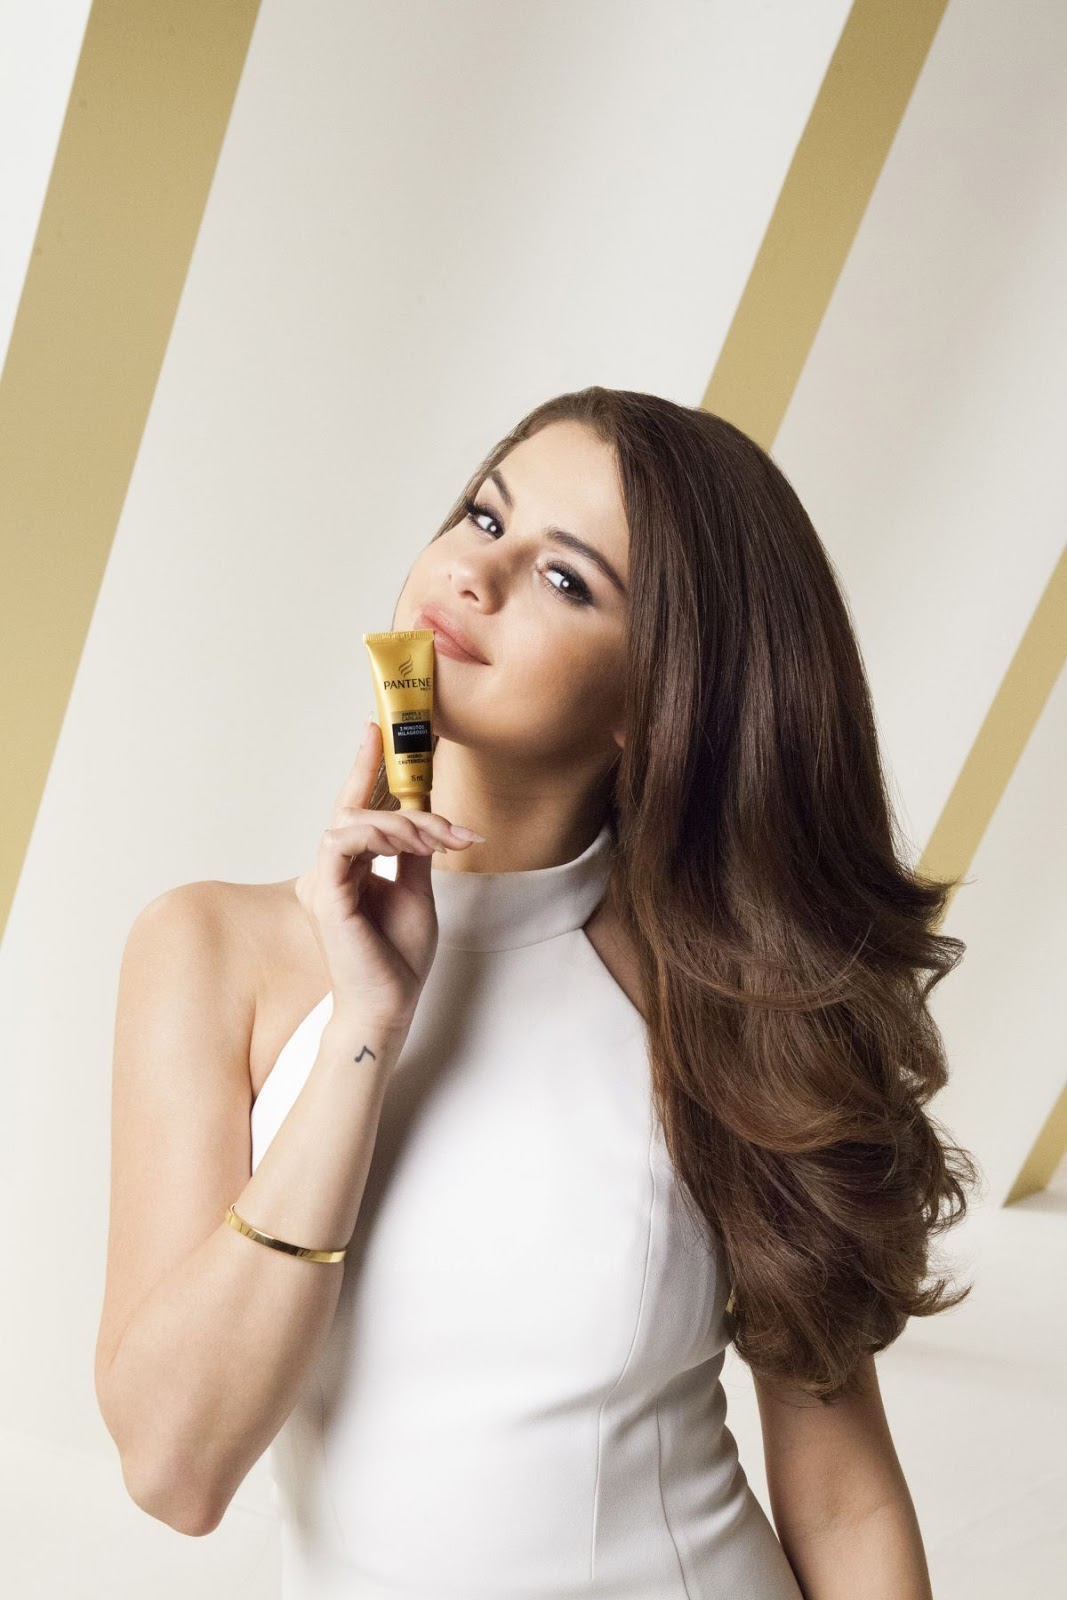 'The Revised Fundamentals of Caregiving' actress Selena Gomez Shoot for Pantene Latin America